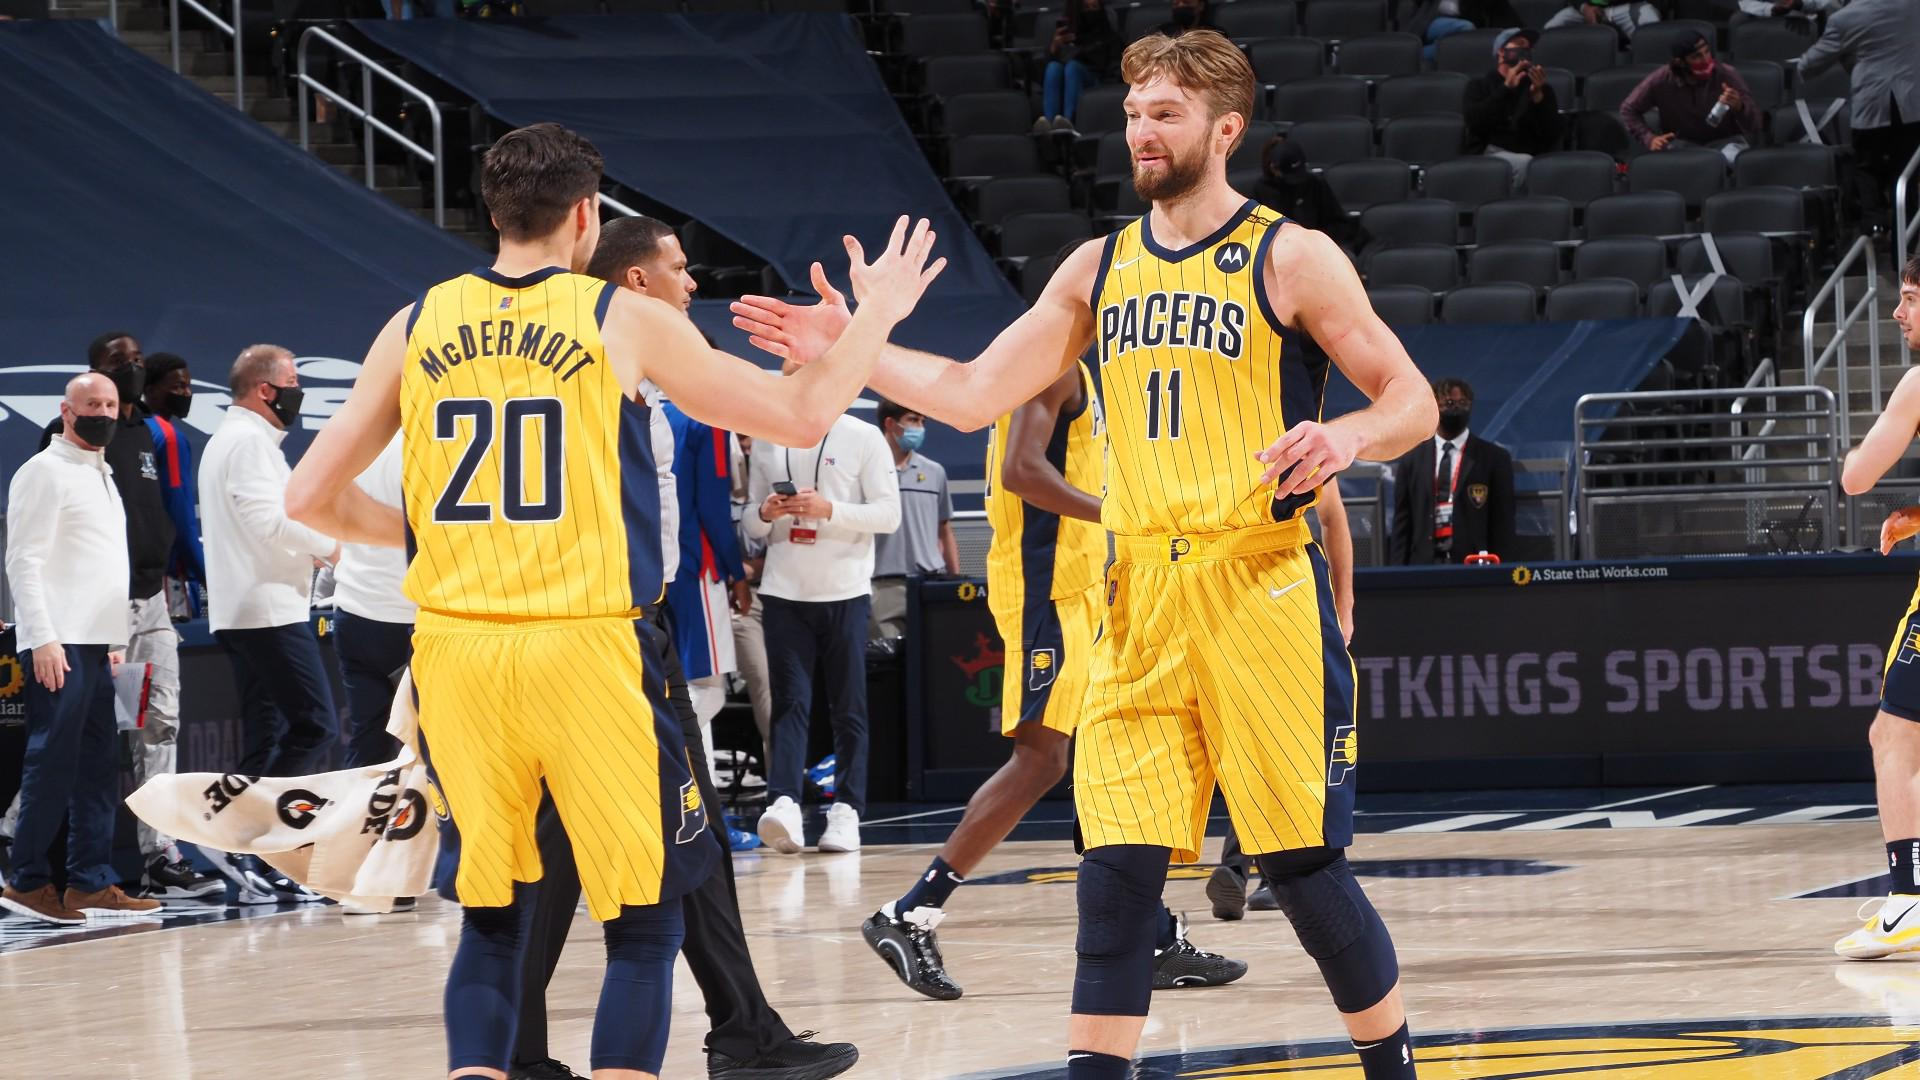 Domantas Sabonis records his 9th triple-double of the season and racks up a career-high 15 assists